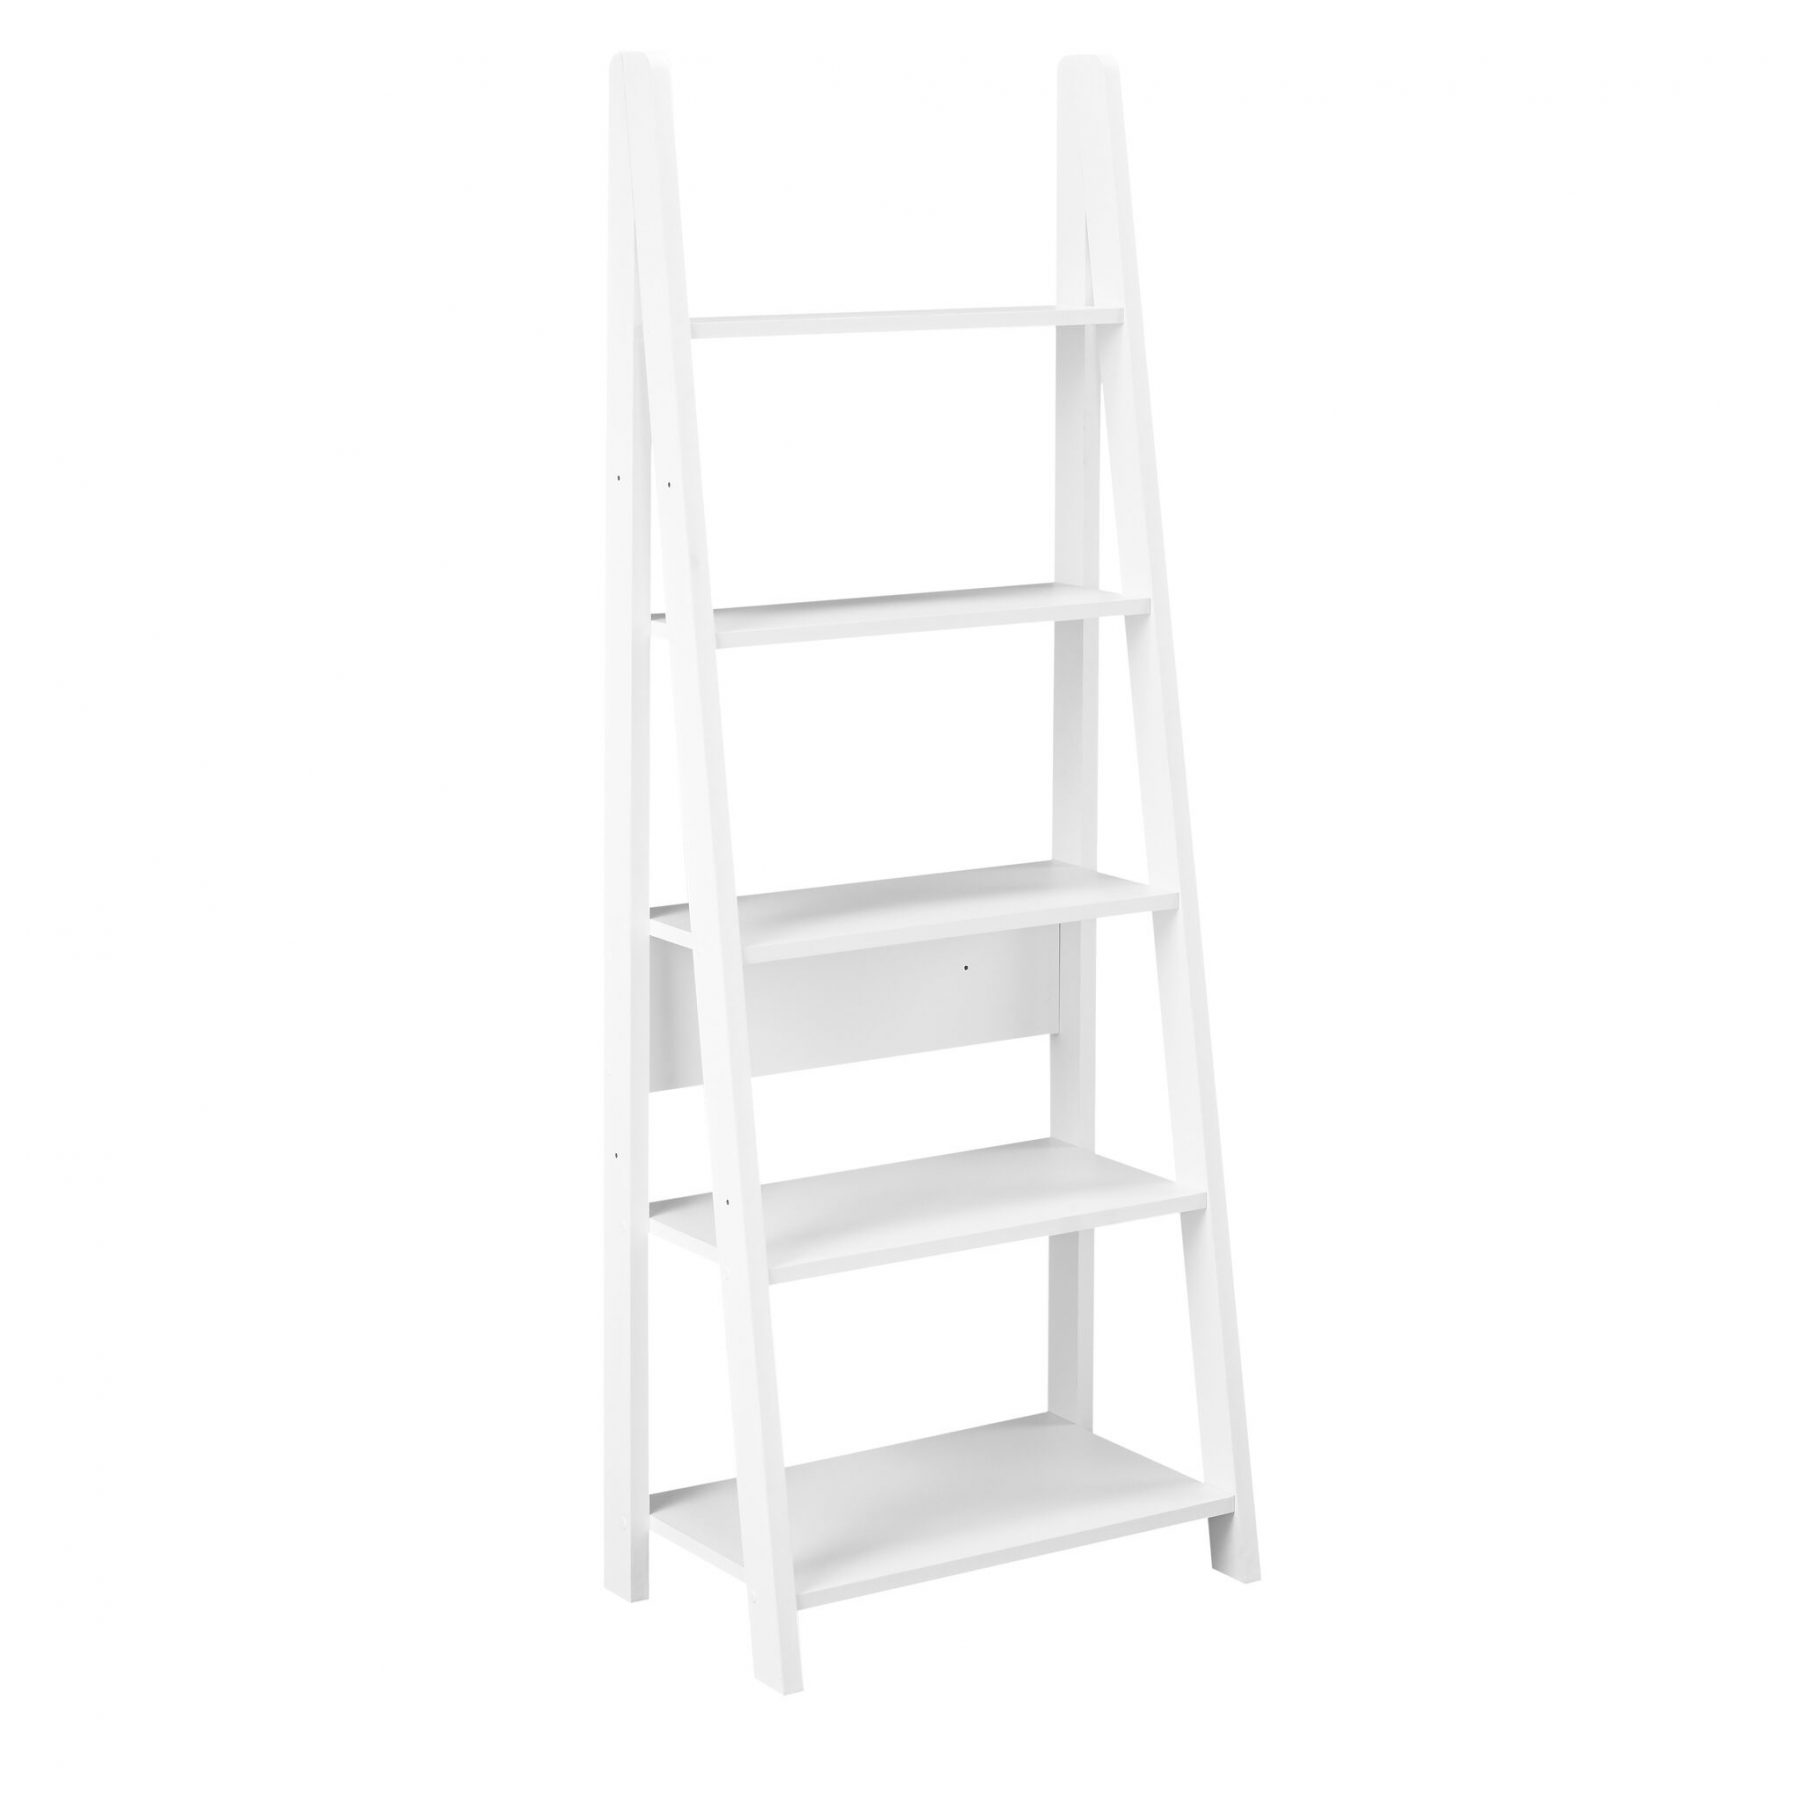 Bodo white bookcase 1